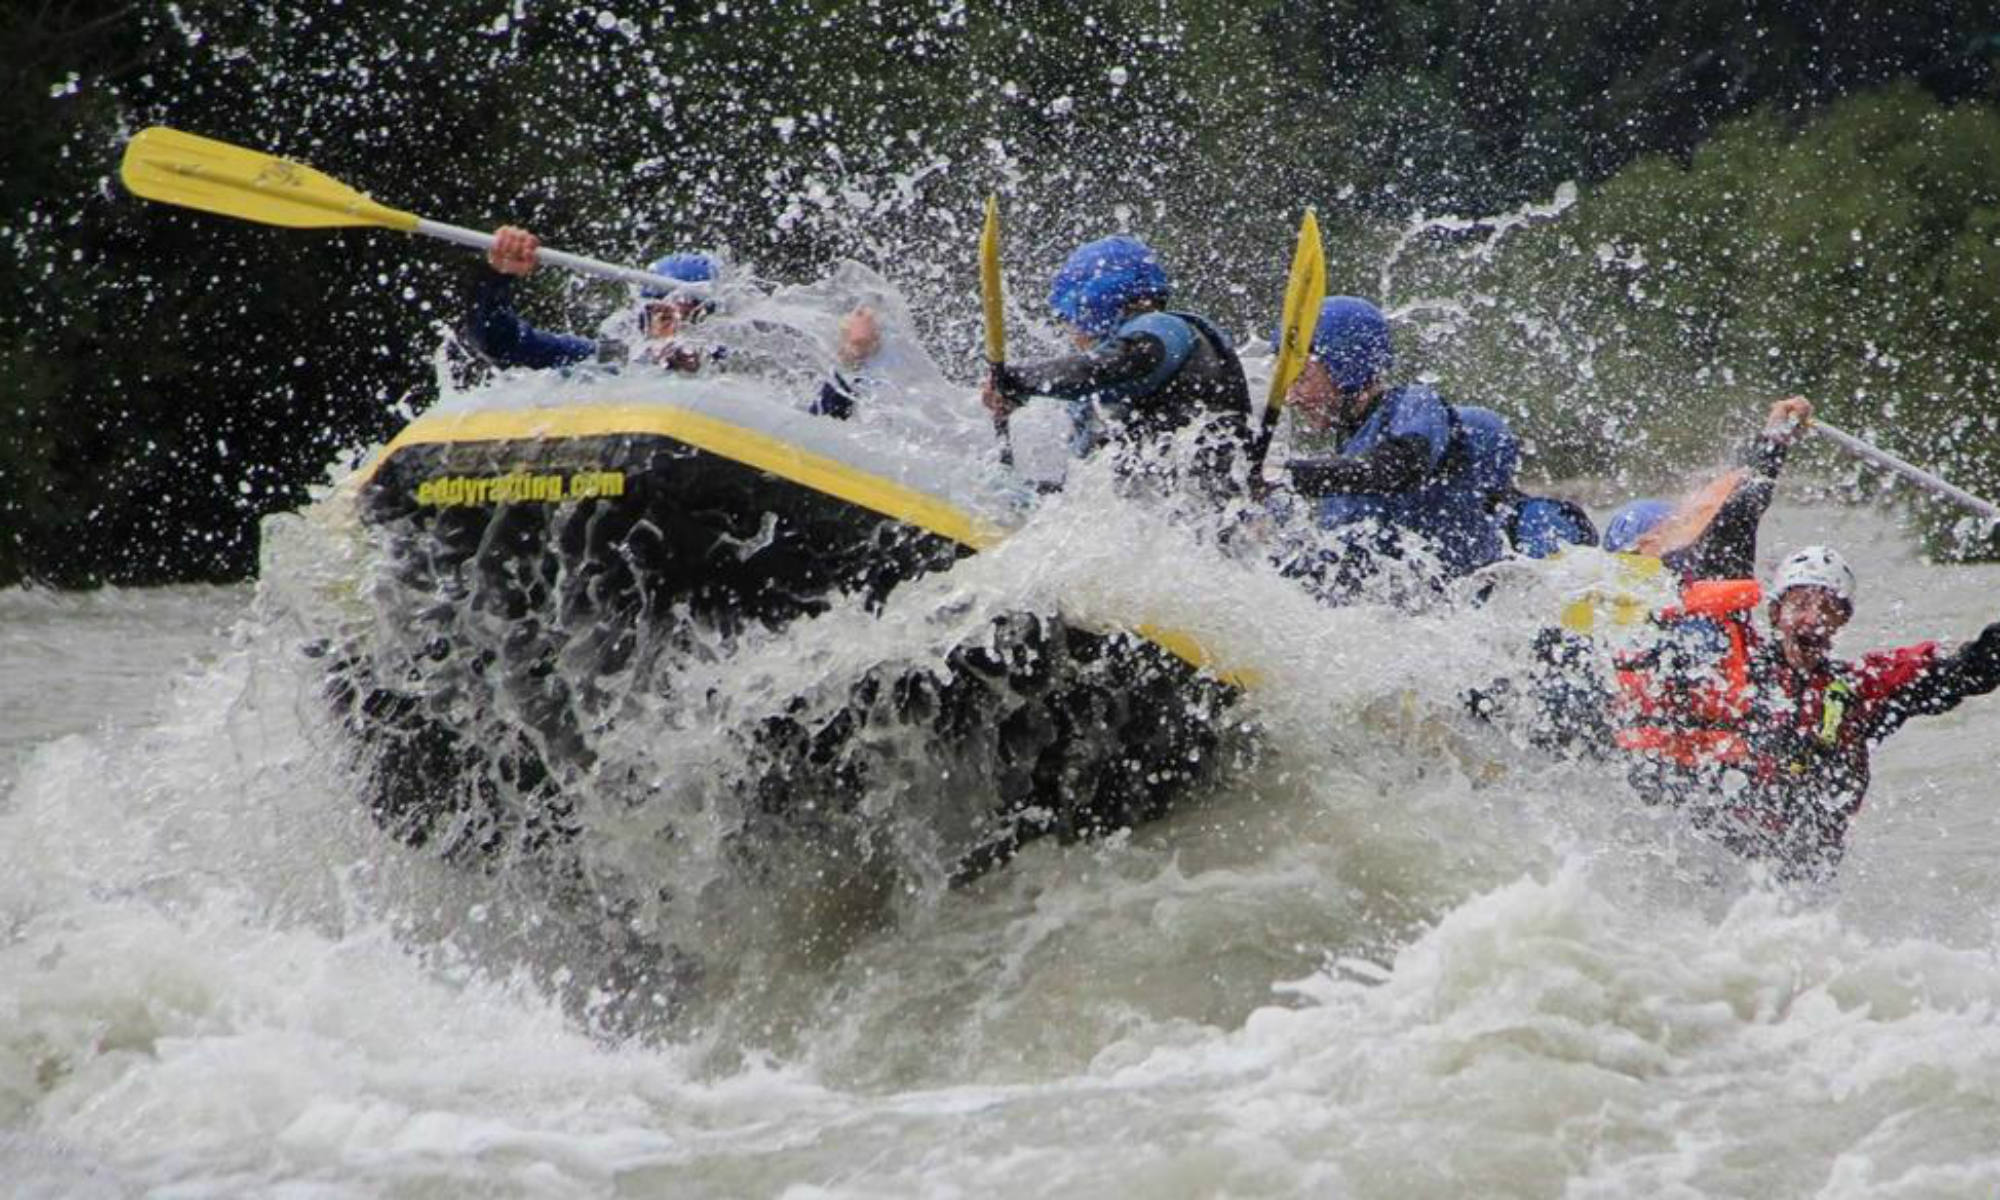 A group of people rafting on the river Isel.